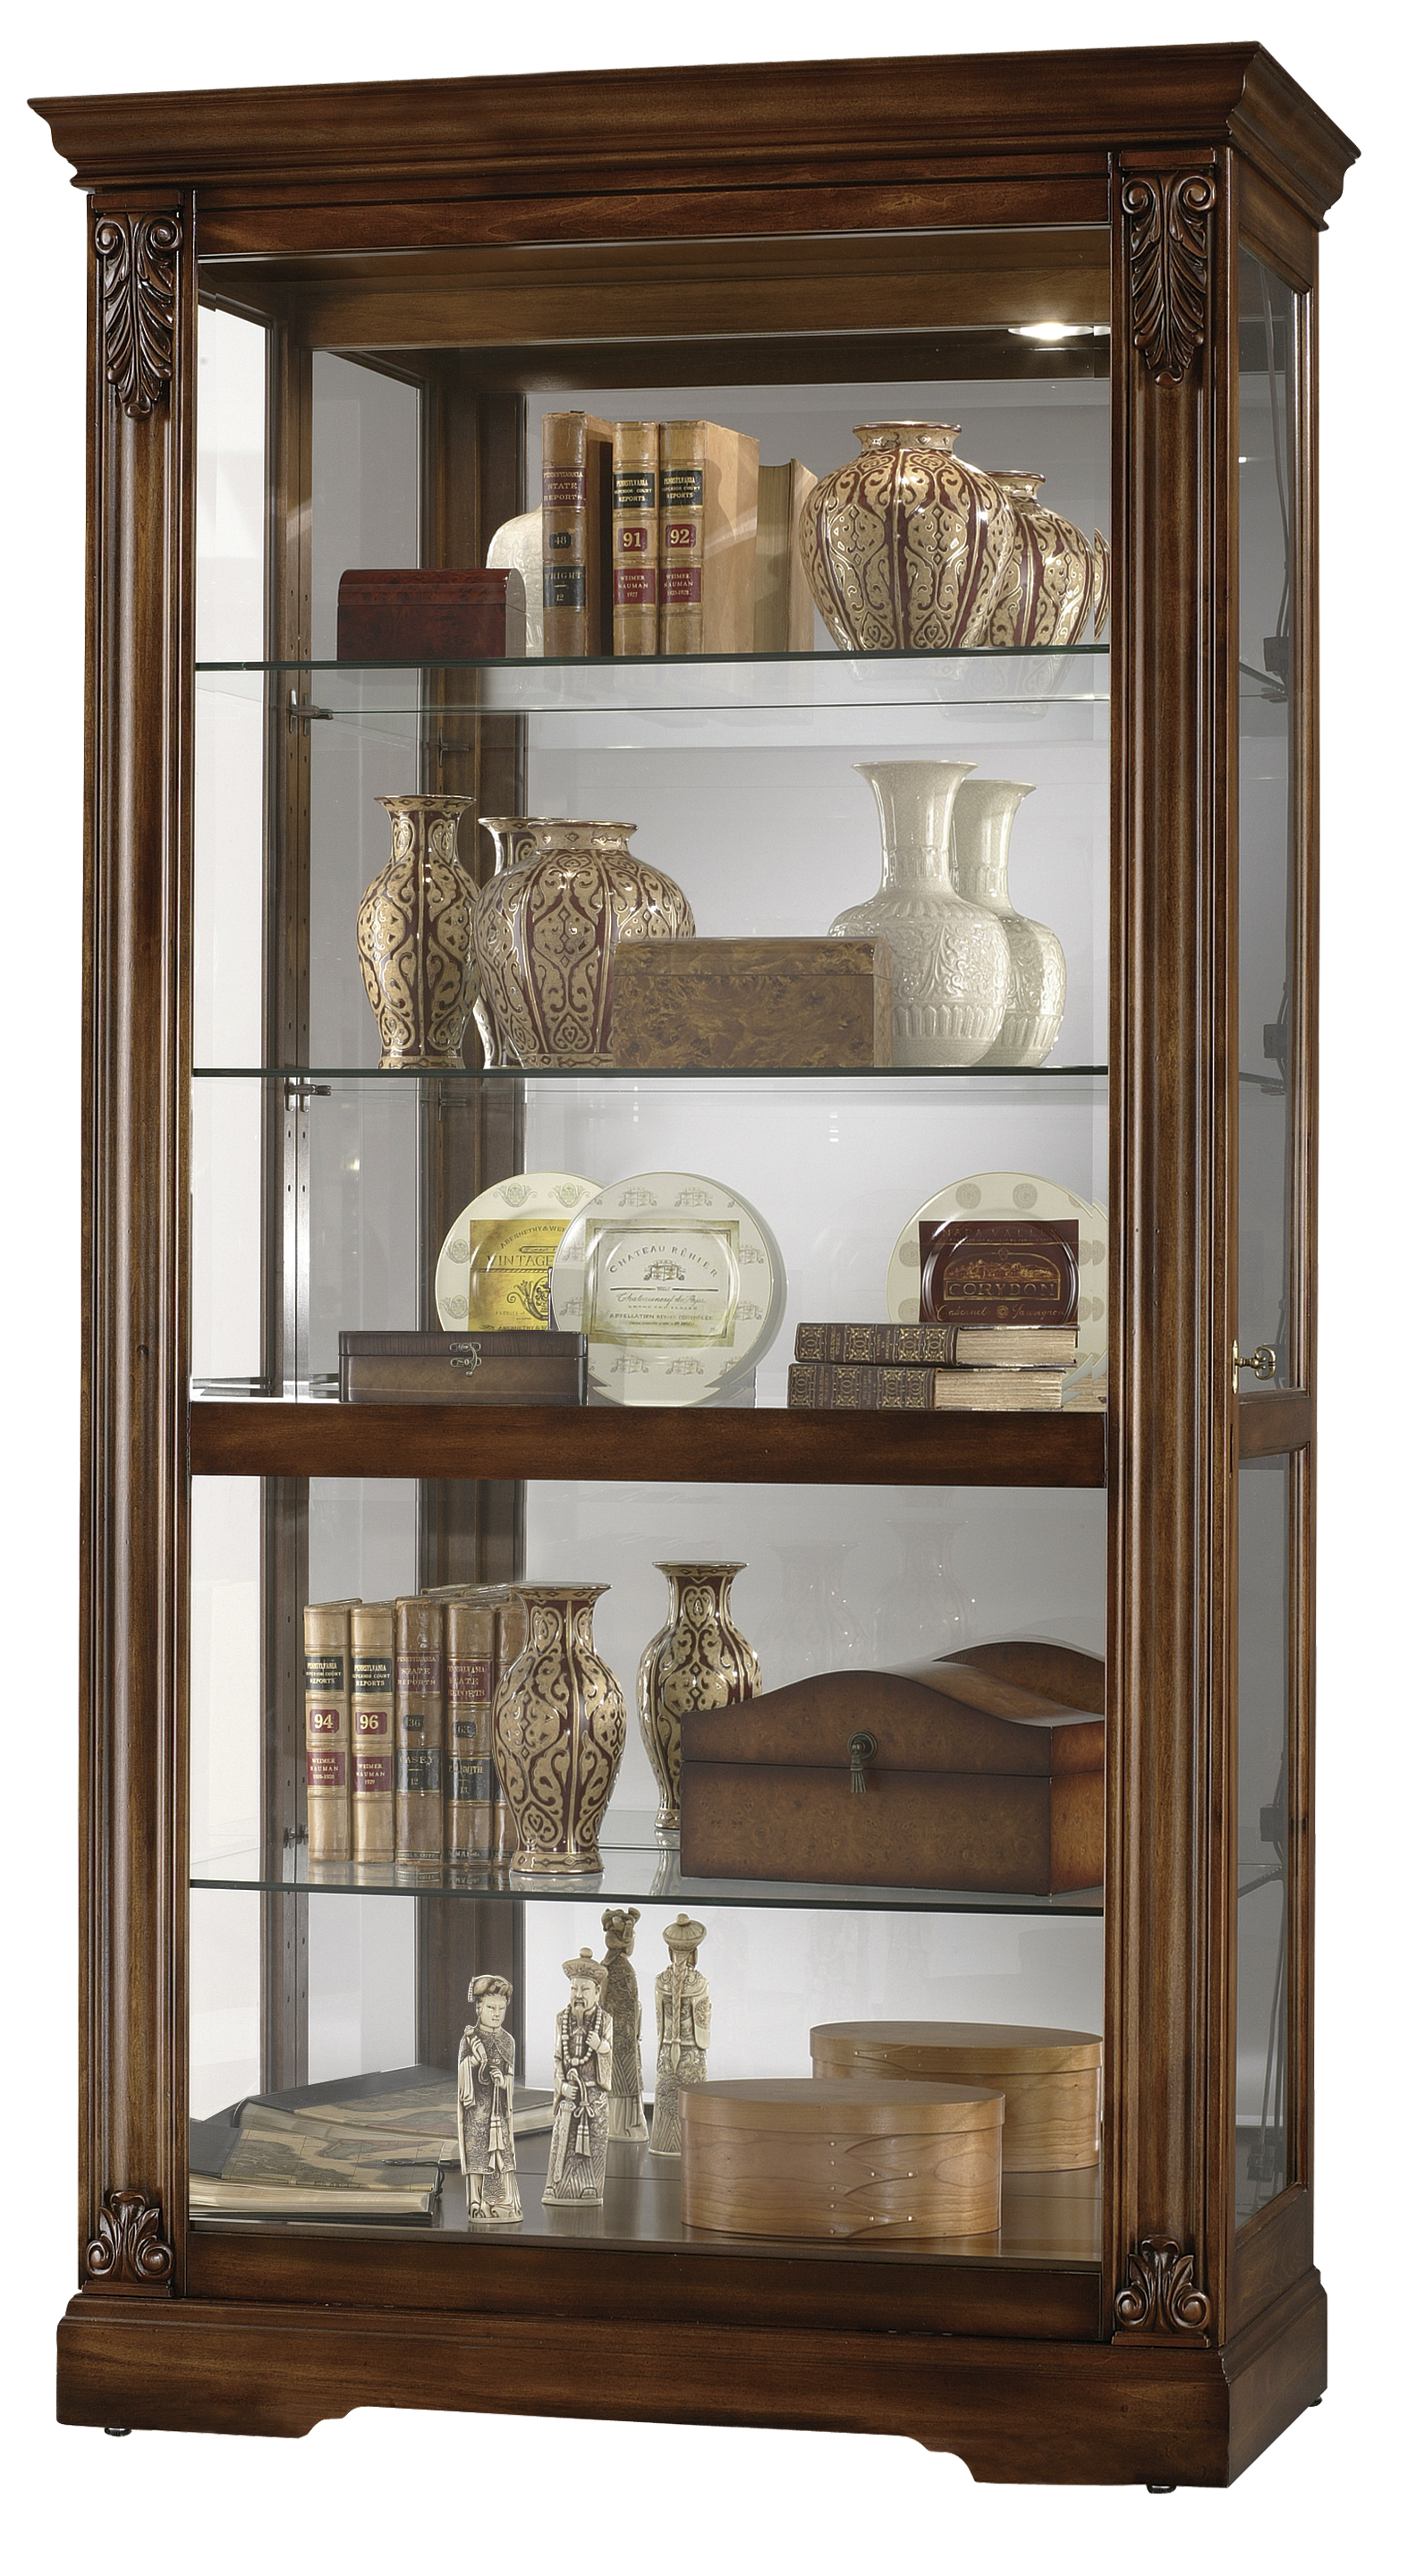 OAK WOOD GLASS WALL CURIO CABINET/DISPLAY CASE for sale